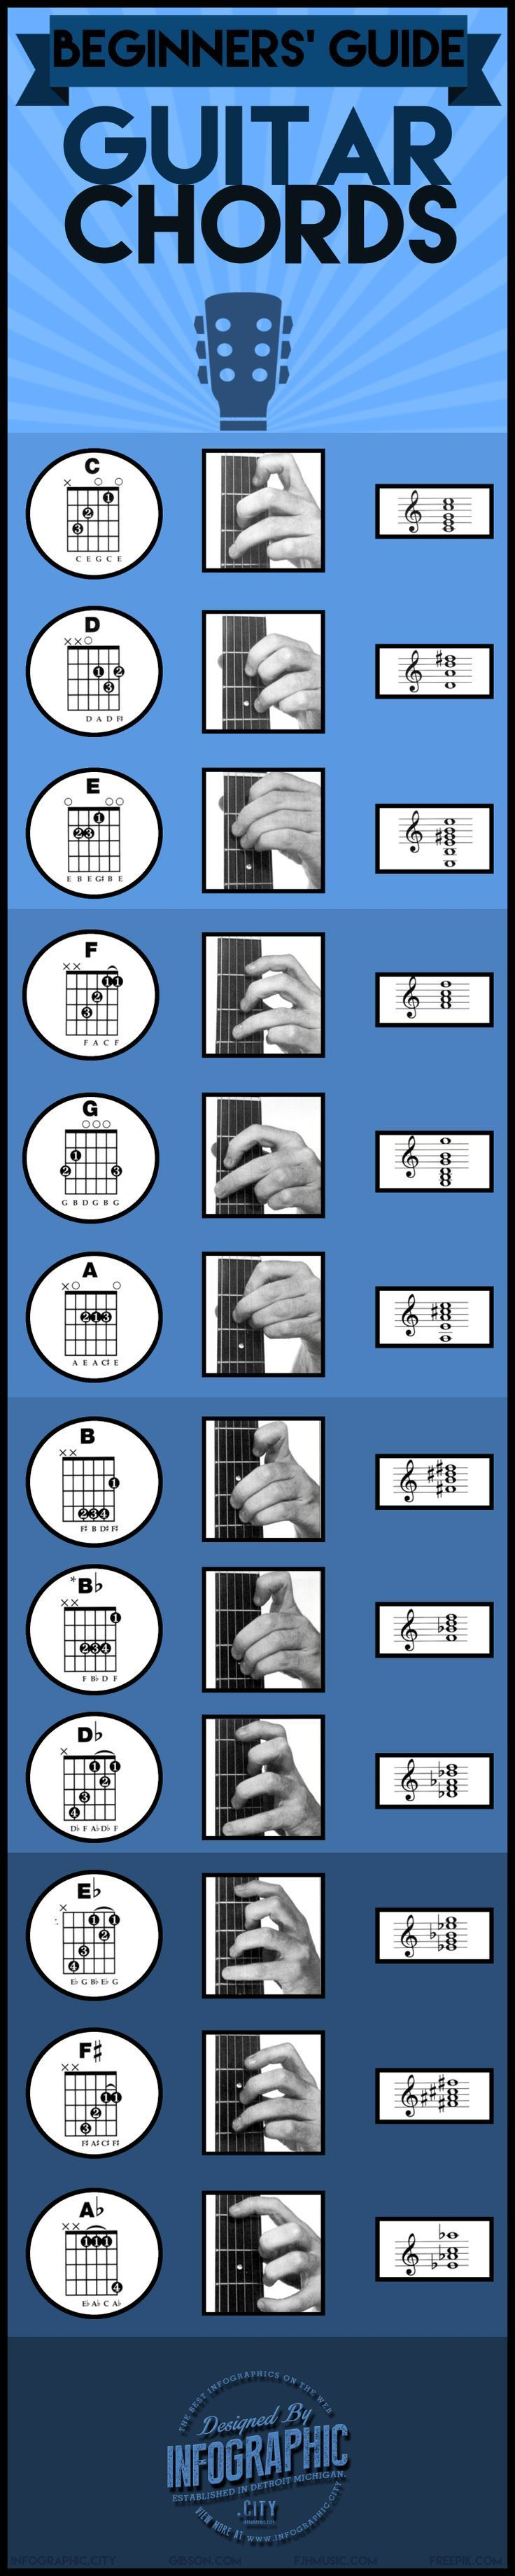 A Beginners Guide To Guitar Chords Infographic Guitar Chords